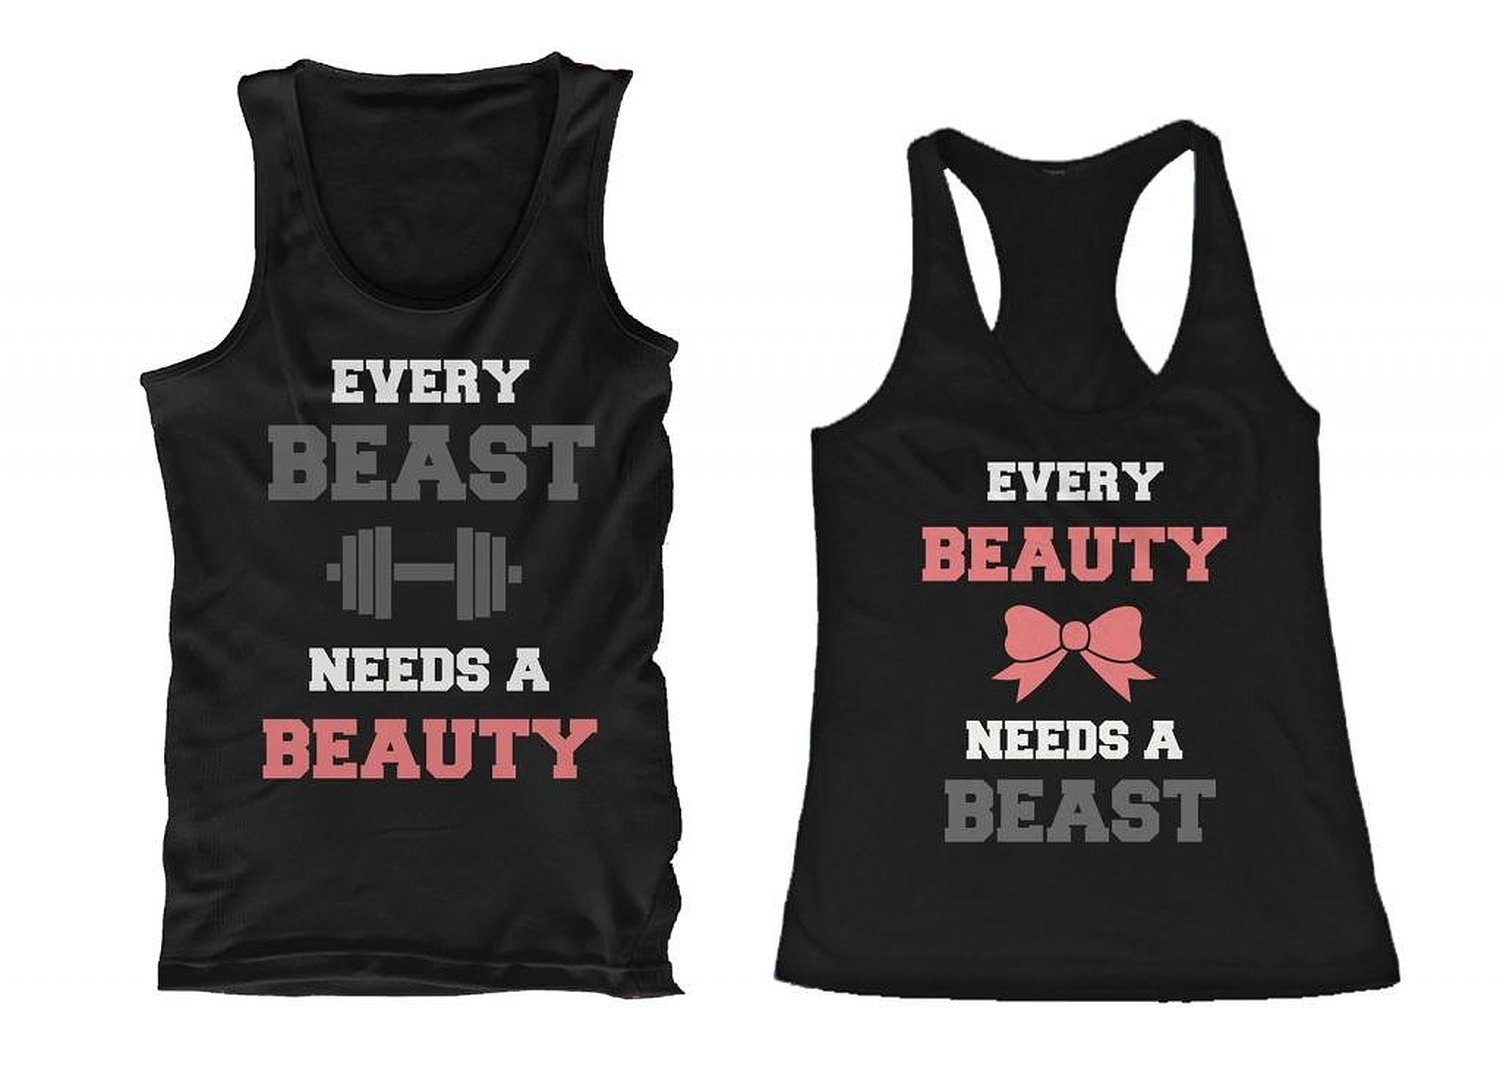 Cute Couple Shirts Matching couple shirts Matching Outfits Tank Tops Tanks Beauty and beast shirts Gym Shirts Workout Shirts Diy Shirt. His and Her Matching Tanks - Like a Beast - Like a Beauty - Sleeveless Tank Tops #BellaCanvas #TankTop. Find this Pin and more on Couples matching apparel by DA LEO'S CUSTOM SHIRTS.